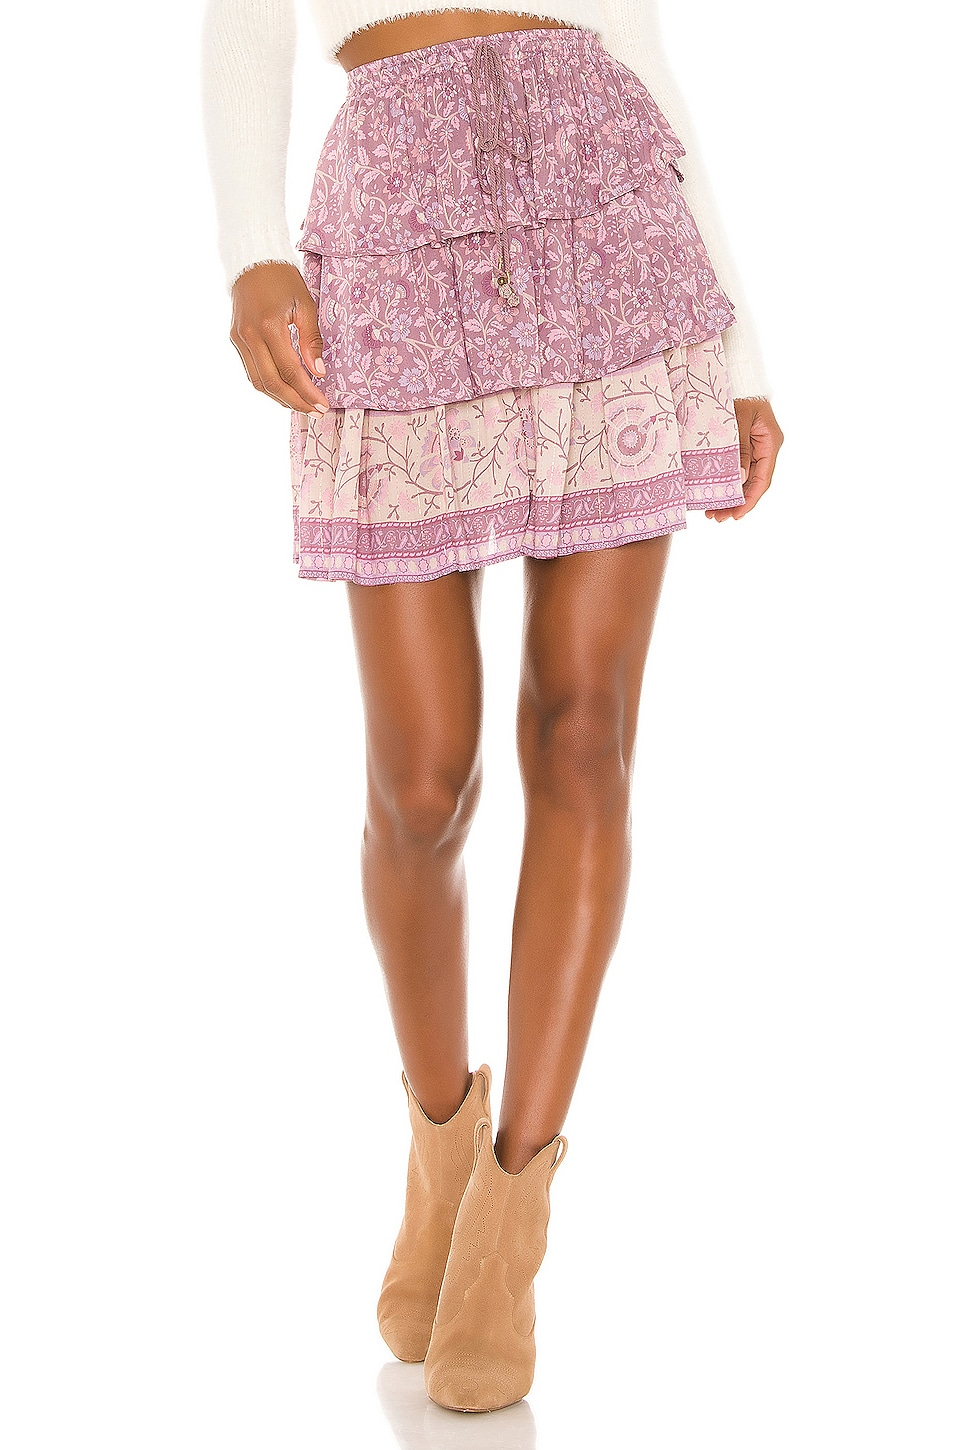 Spell & The Gypsy Collective Dahlia Ra Ra Mini Skirt in Mulberry